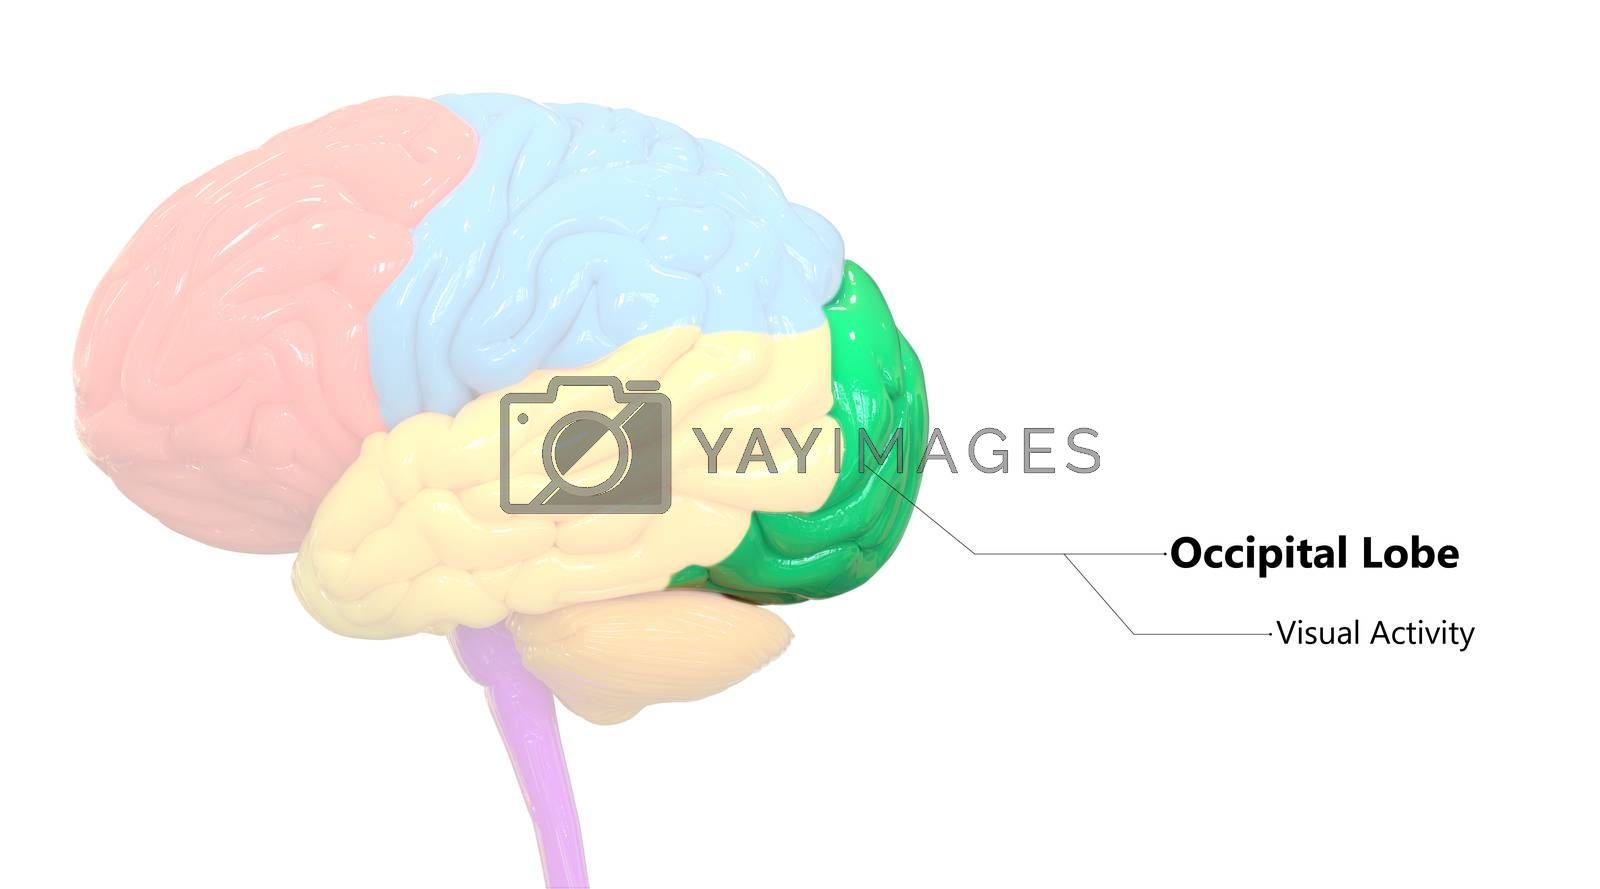 3D Illustration Concept of Central Organ of Human Nervous System Brain Lobes Occipital Lobe Described with Labels Anatomy